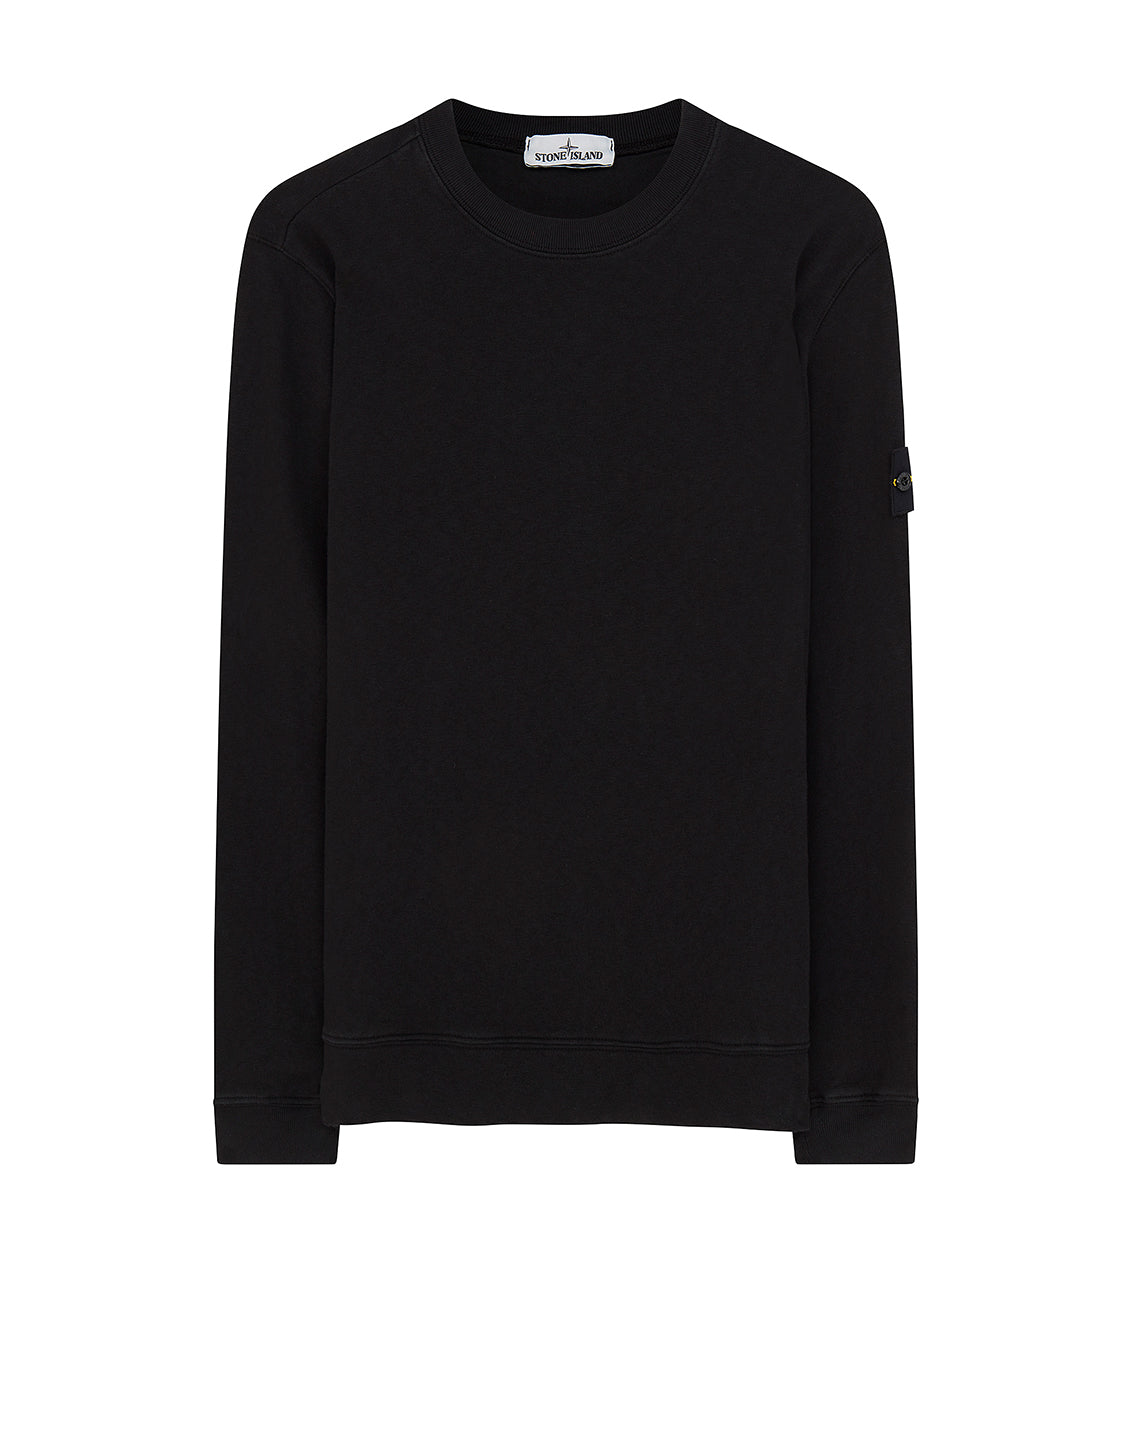 65560 'OLD' DYE TREATMENT Sweatshirt in Black